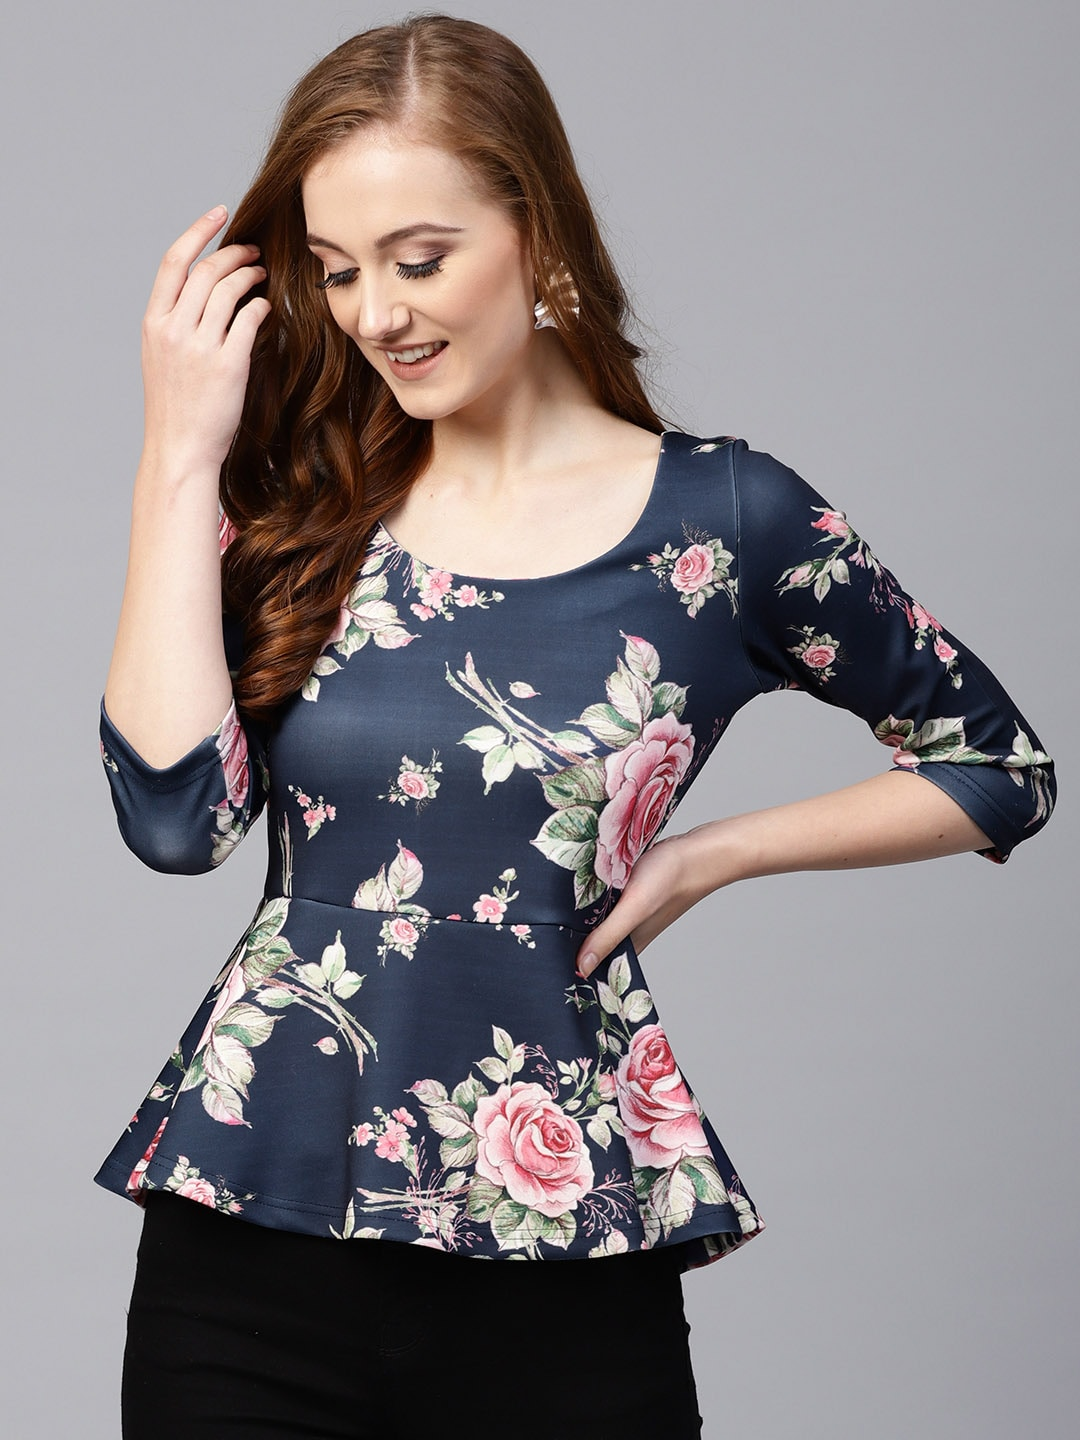 Floral Print Tops Buy Floral Print Tops Online In India